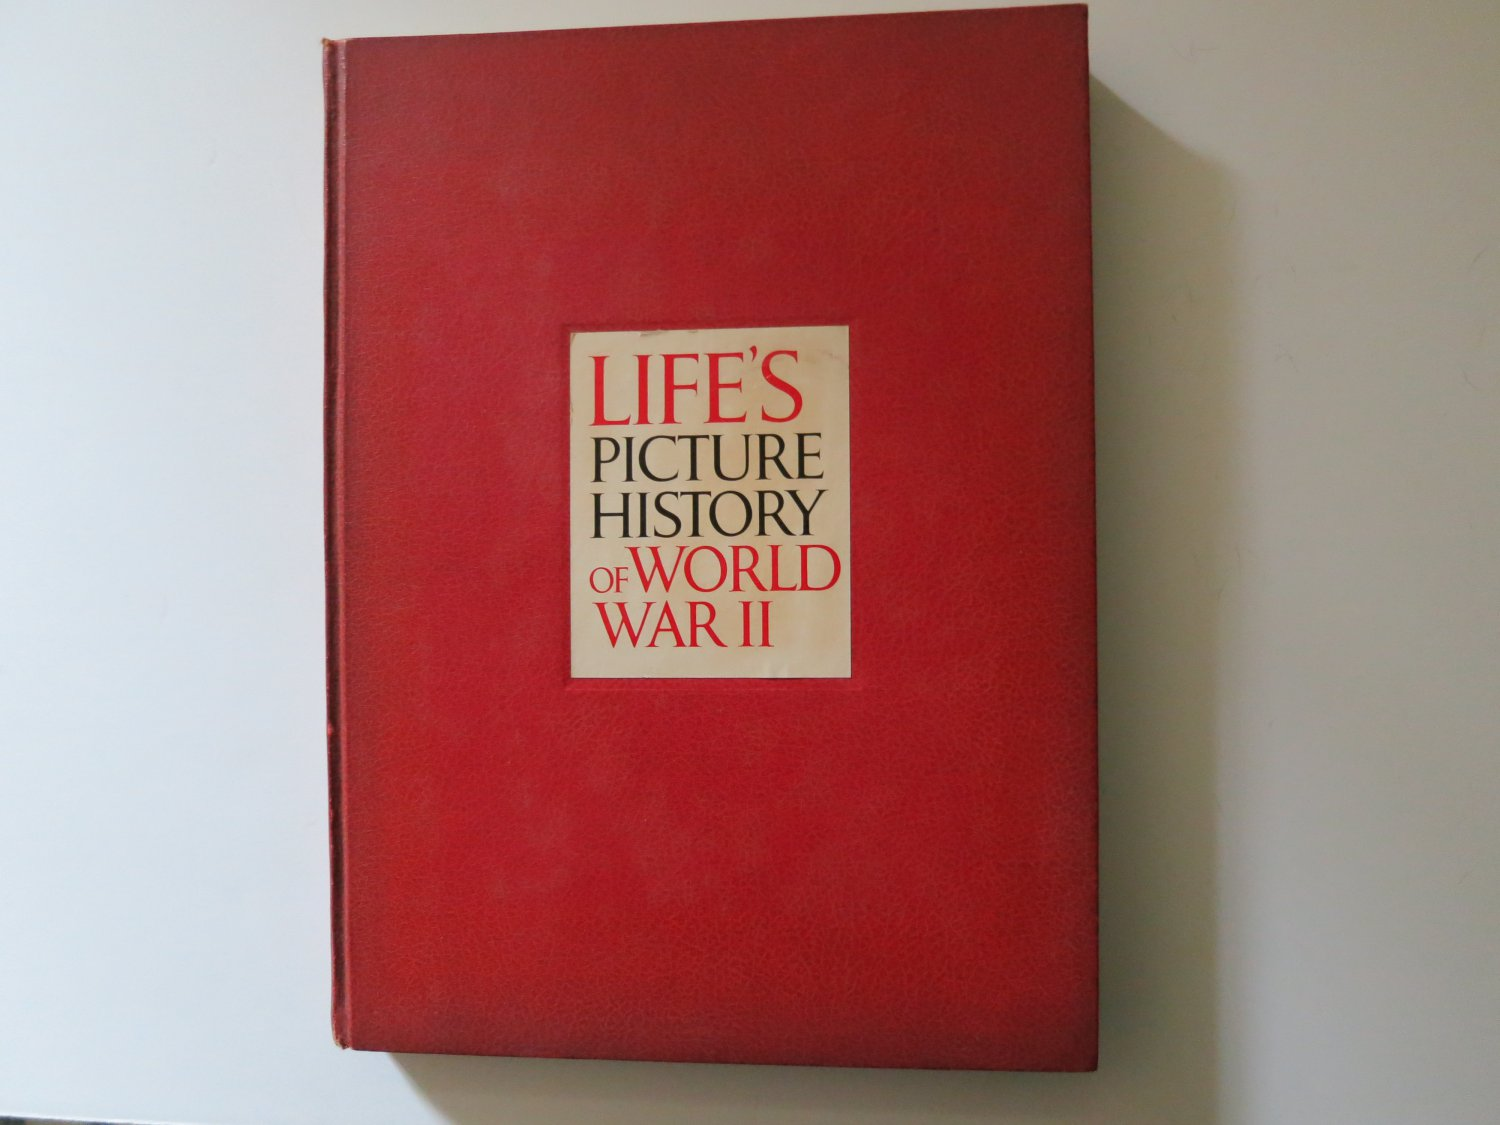 Life's Picture History Of World War II (Hardcover) Time Inc 1950